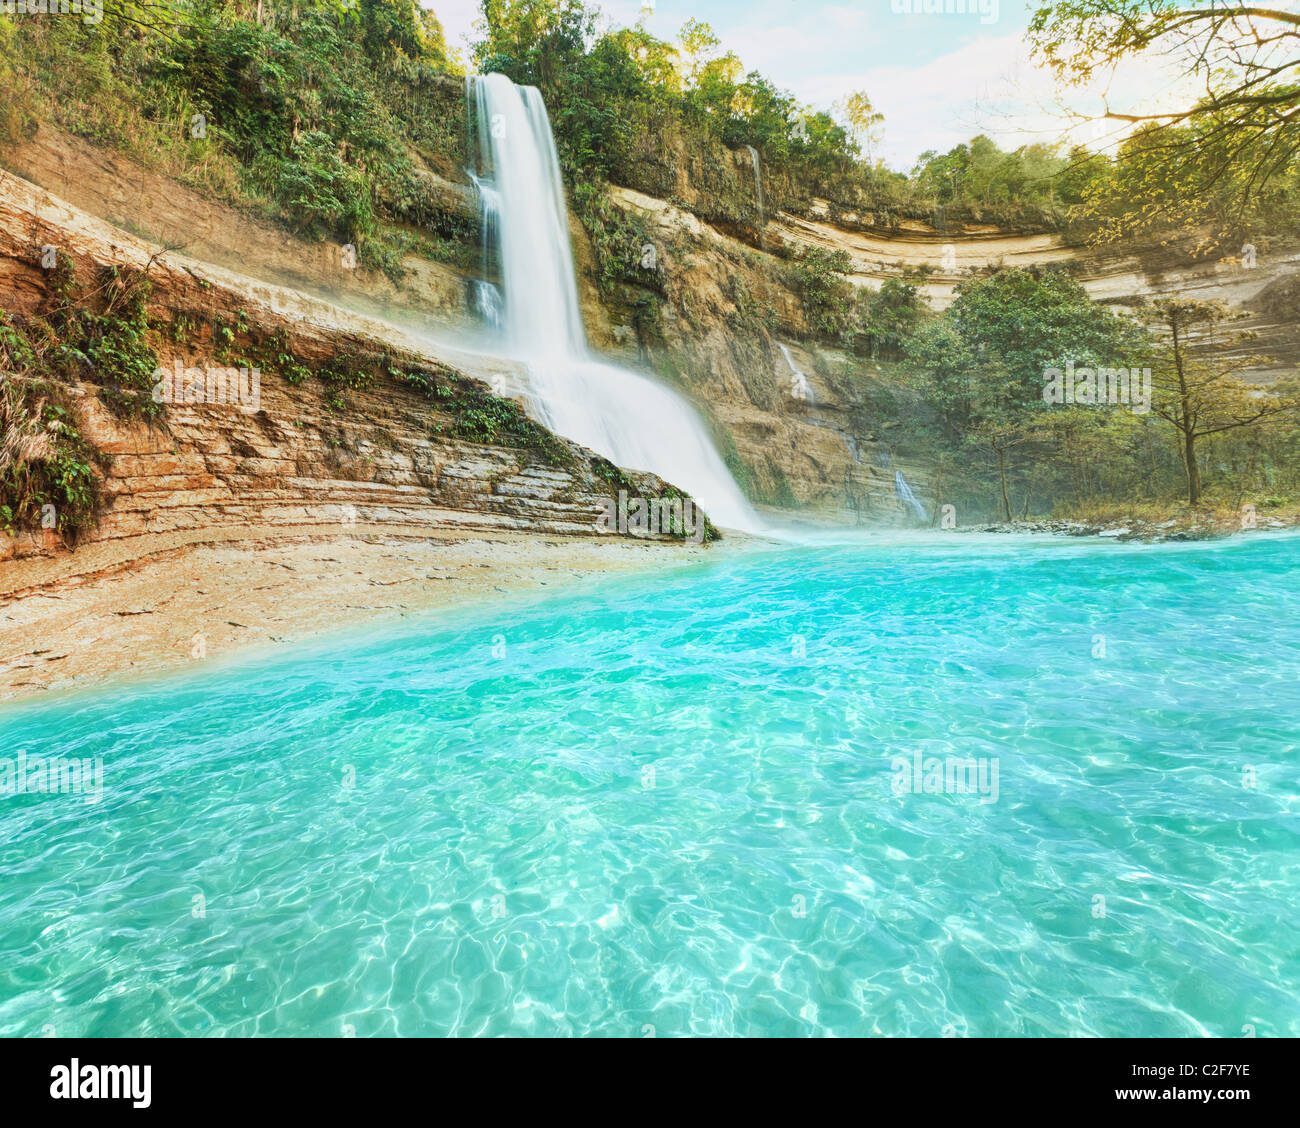 Wasserfall pool stockfotos wasserfall pool bilder alamy - Wasserfall pool ...